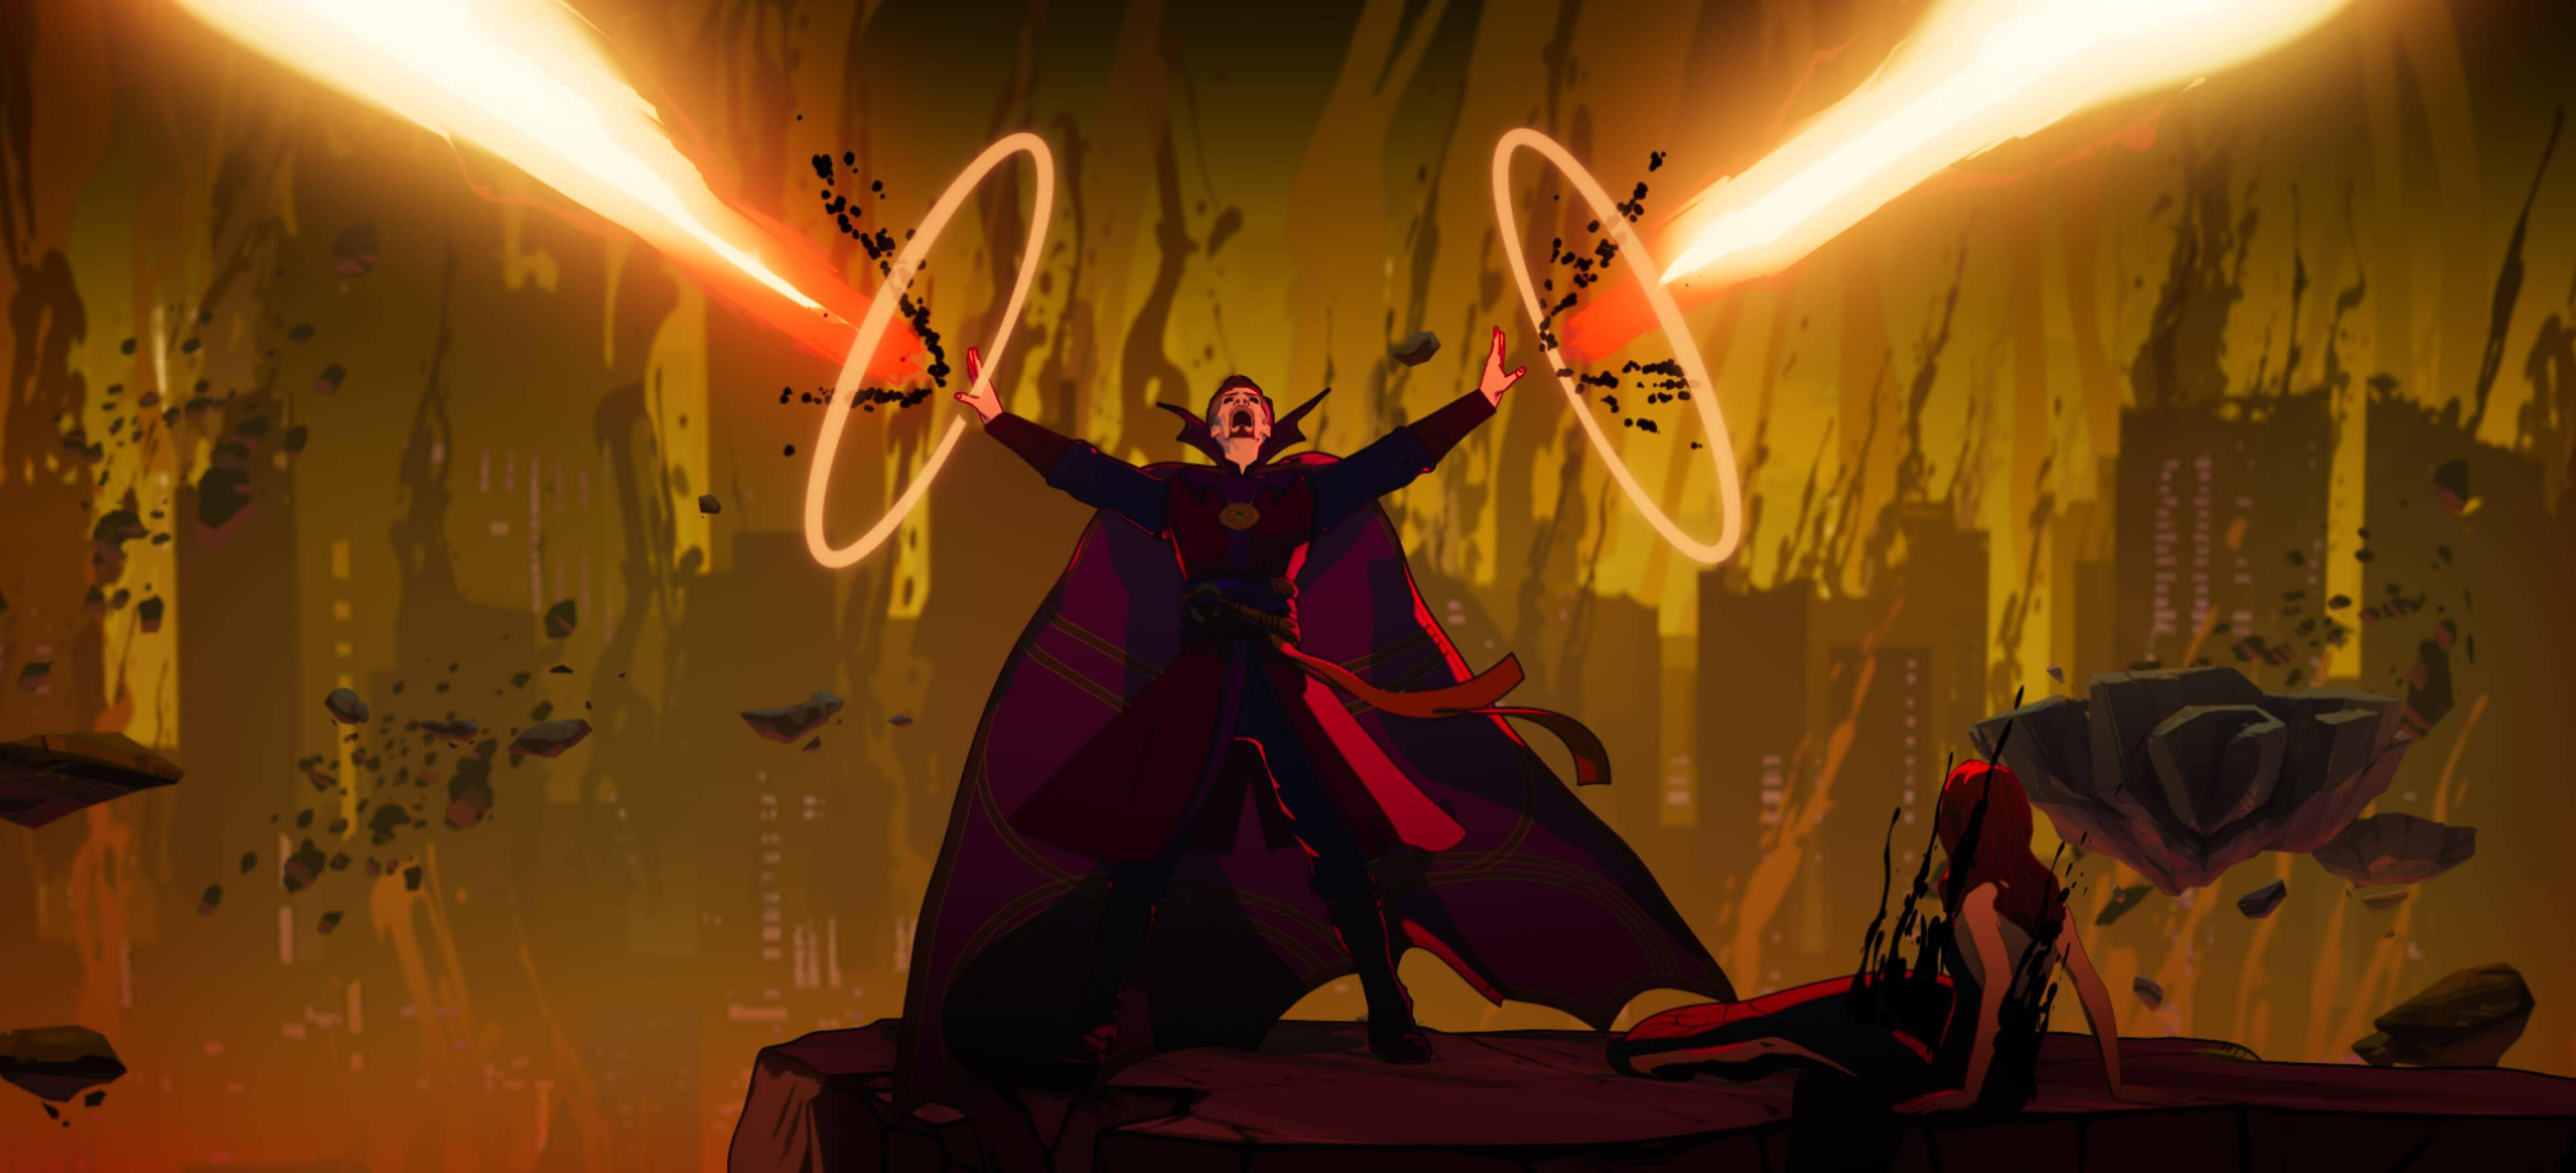 A still from Marvel's What If...? of Doctor Strange Supreme shooting magic as he tries to save his world